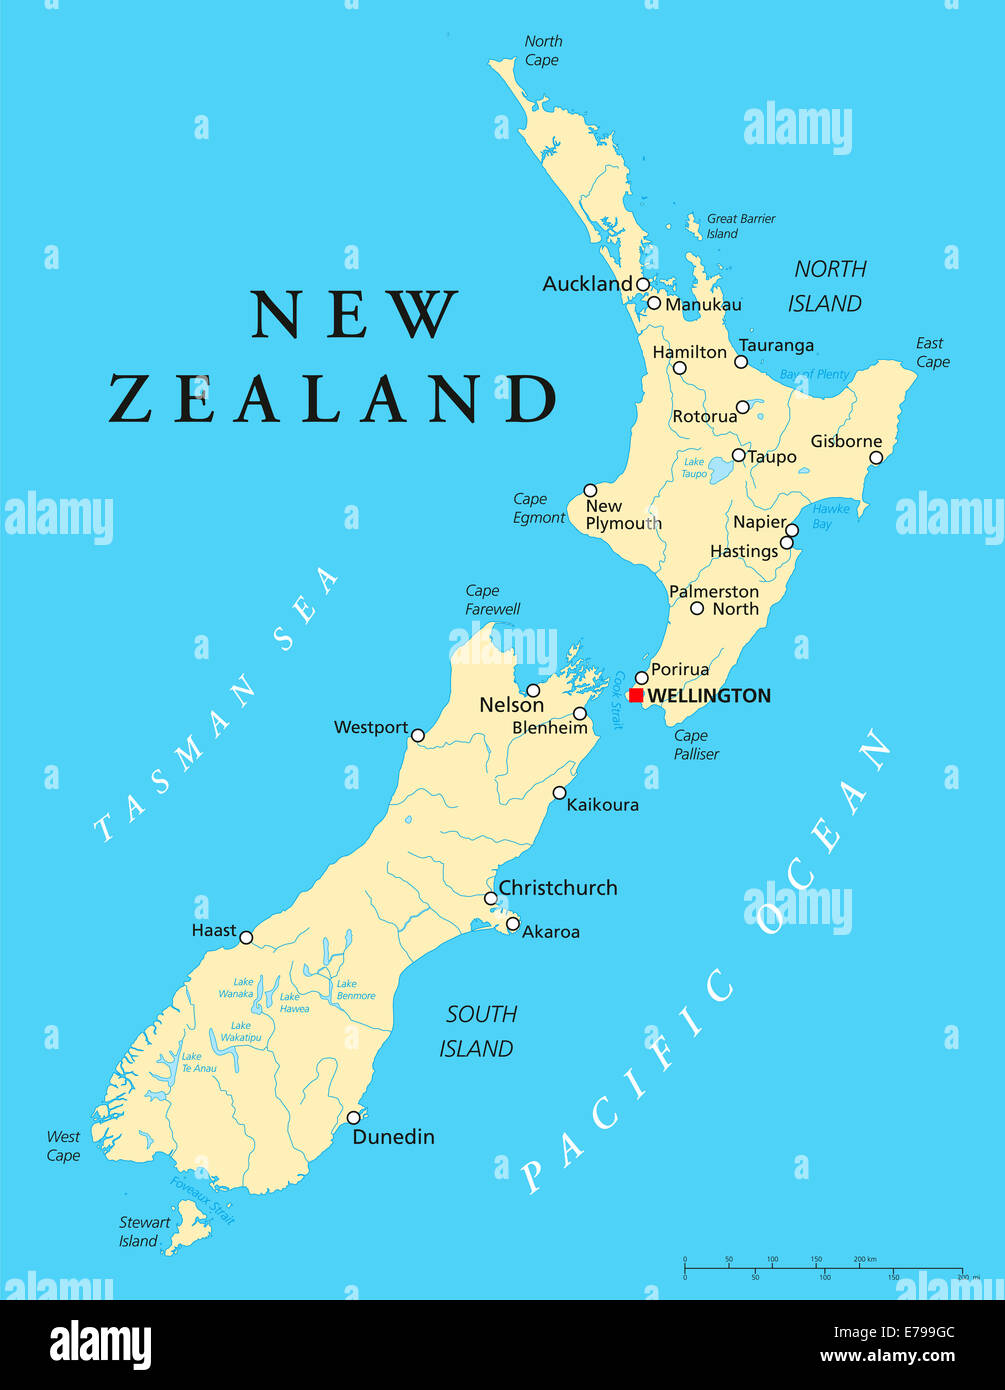 Map Of New Zealand Wellington.New Zealand Political Map With Capital Wellington National